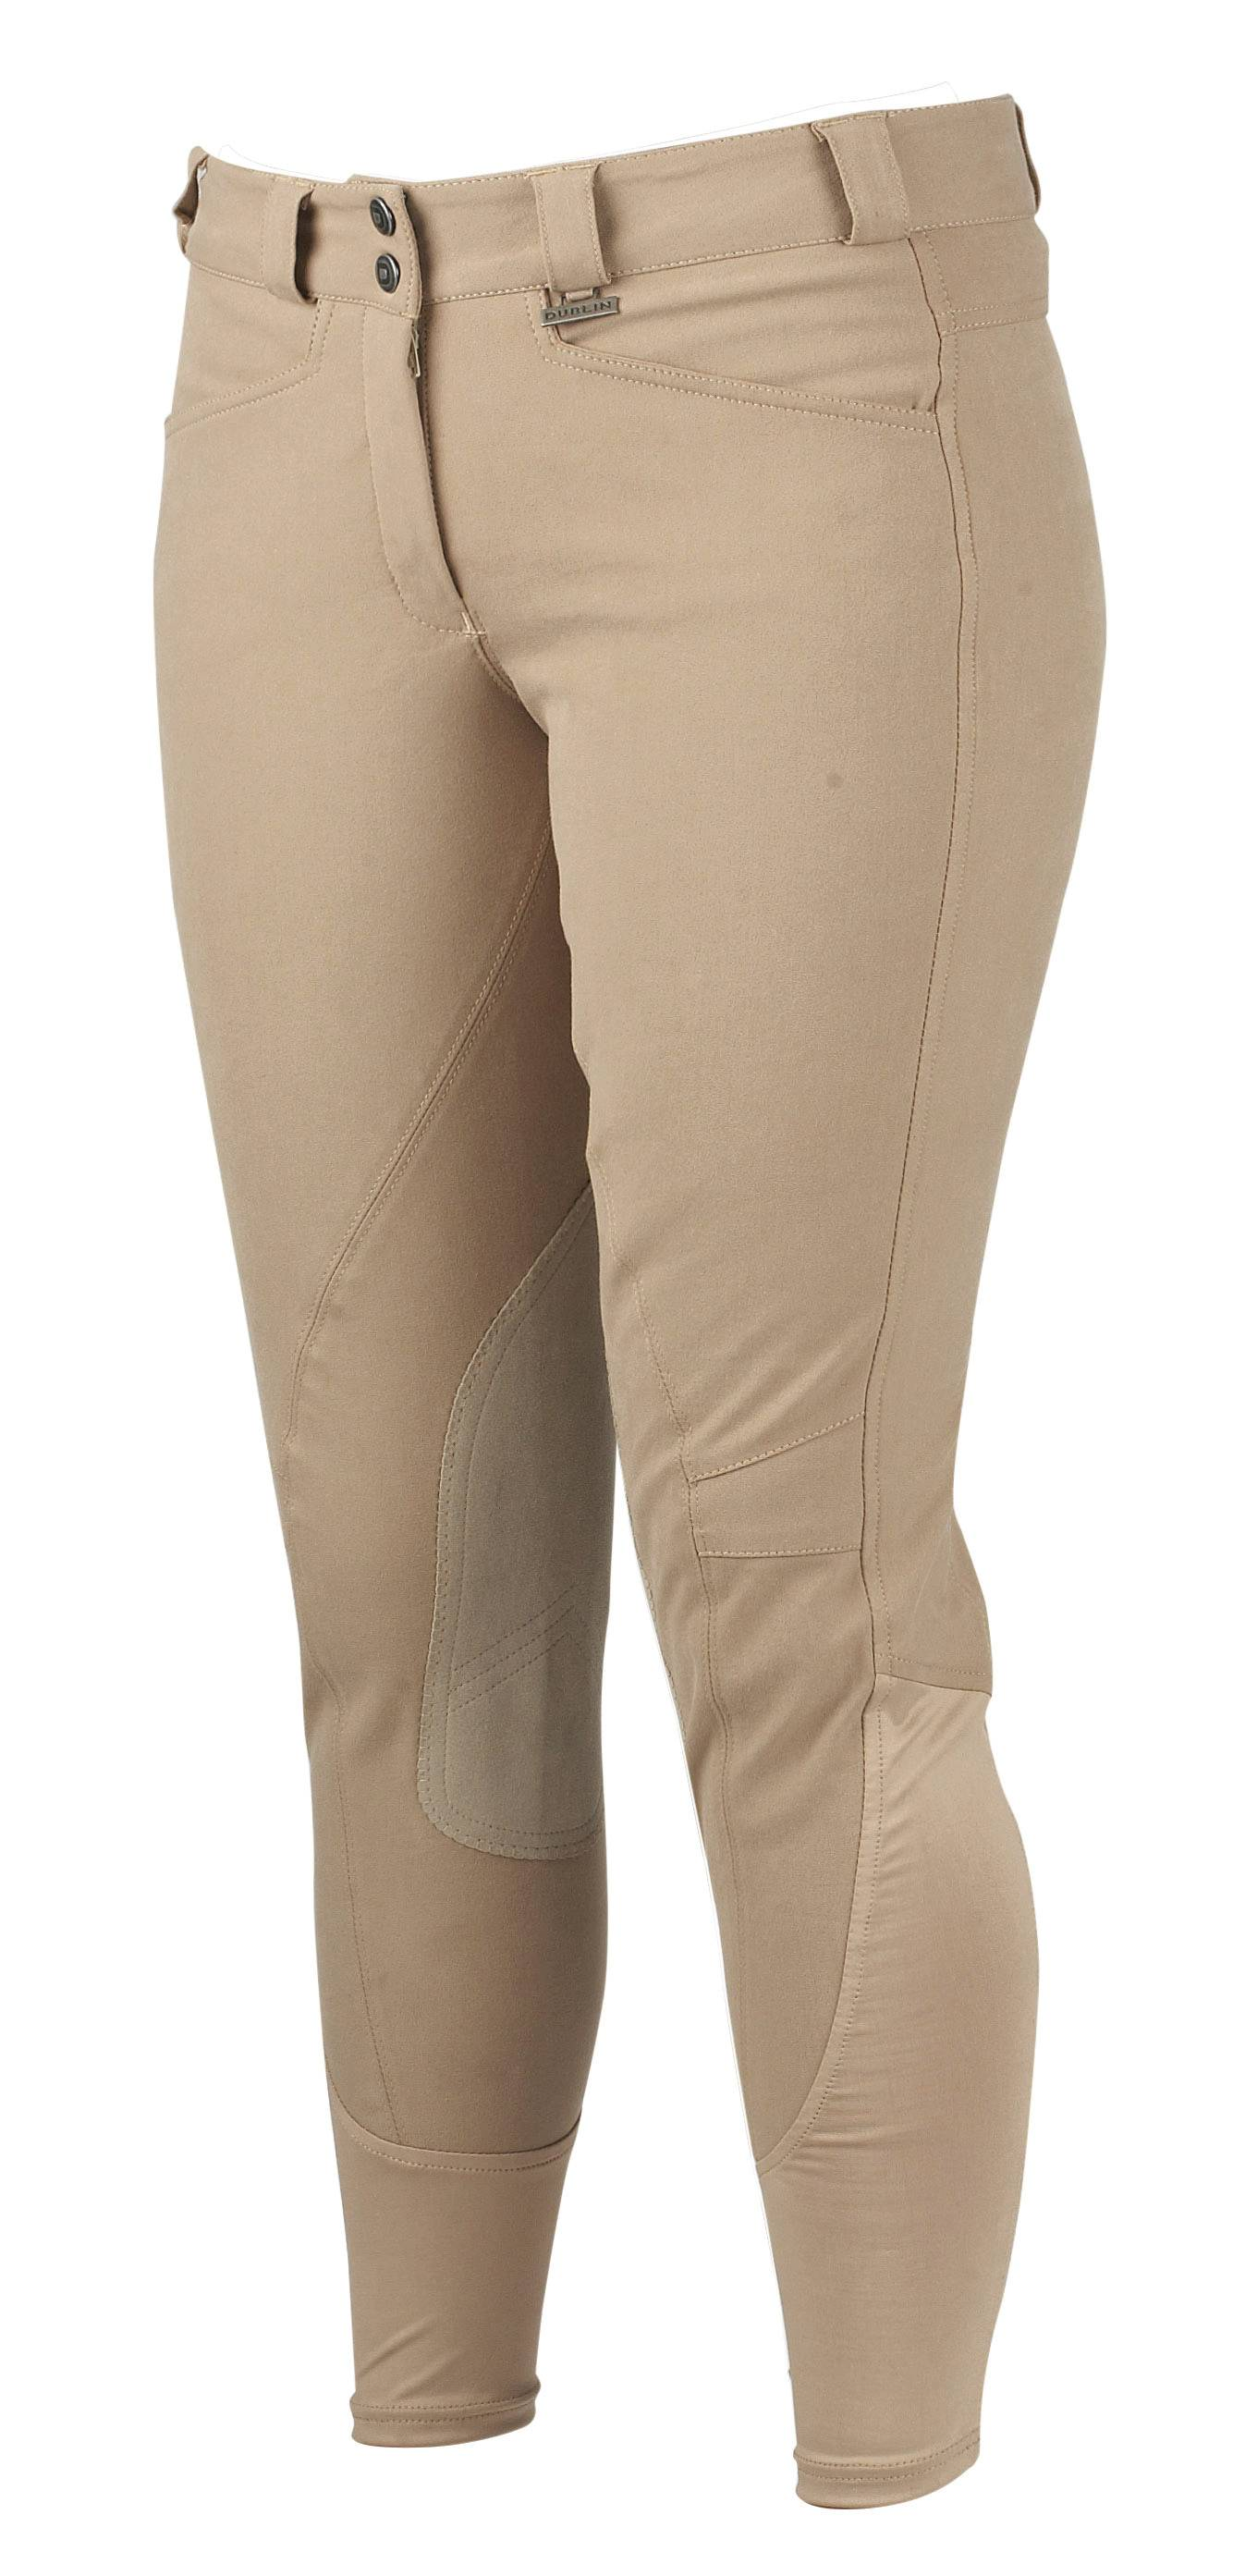 Dublin Performance Signature Breeches - Ladies, EuroSeat